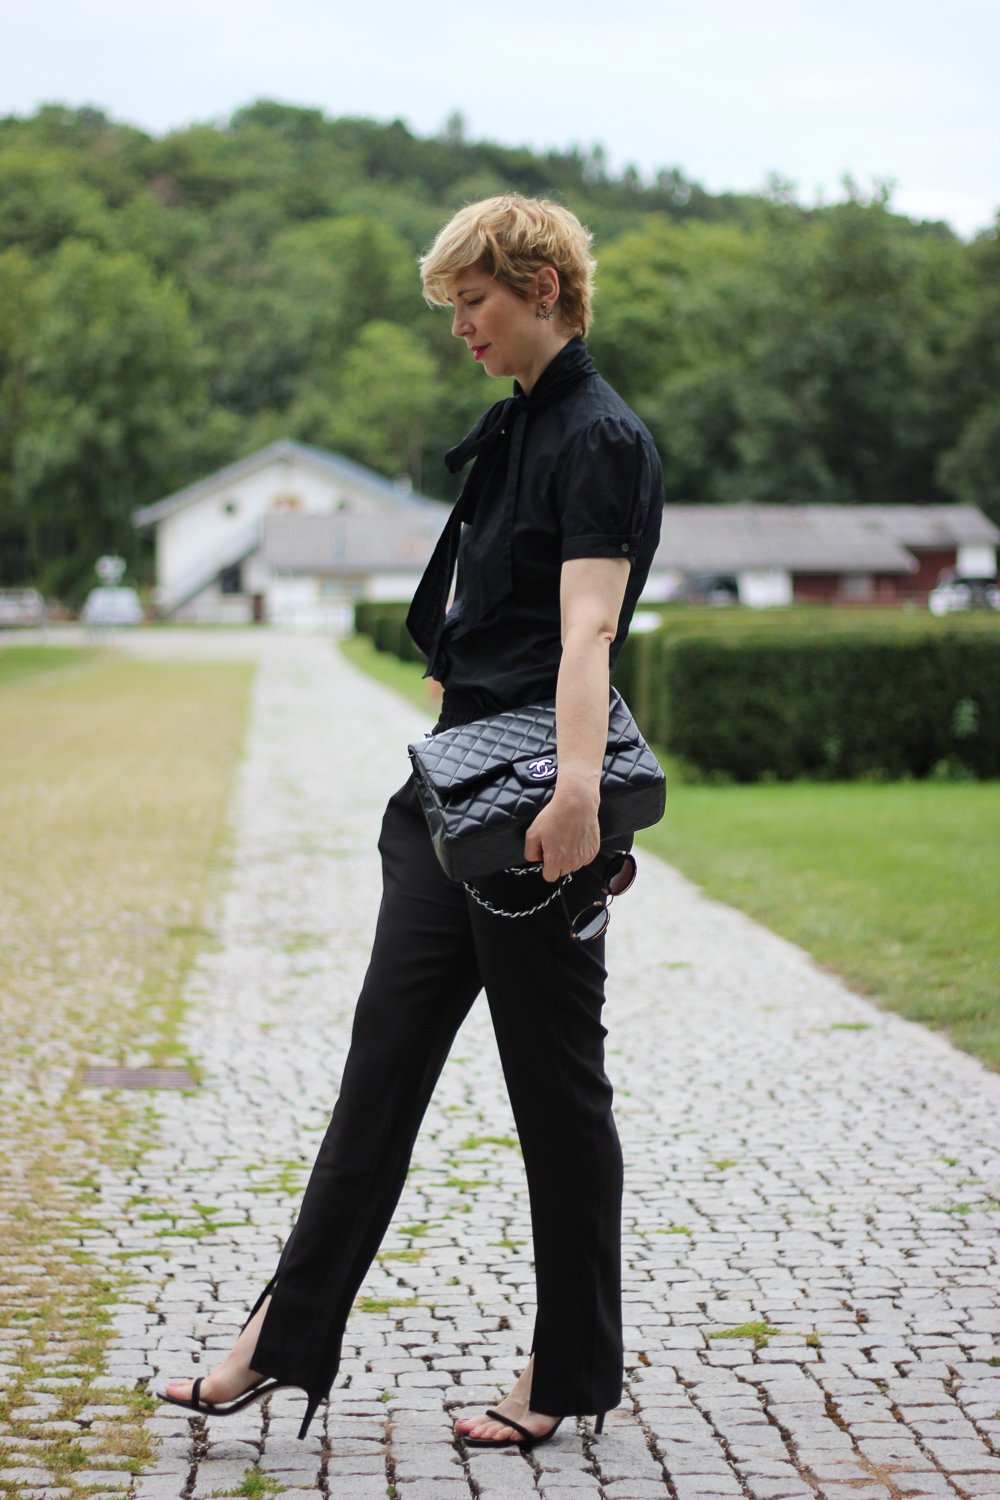 conny doll lifestyle: Stylinginspiration, Schluppenbluse, schwarz, all black, Spätsommerlook